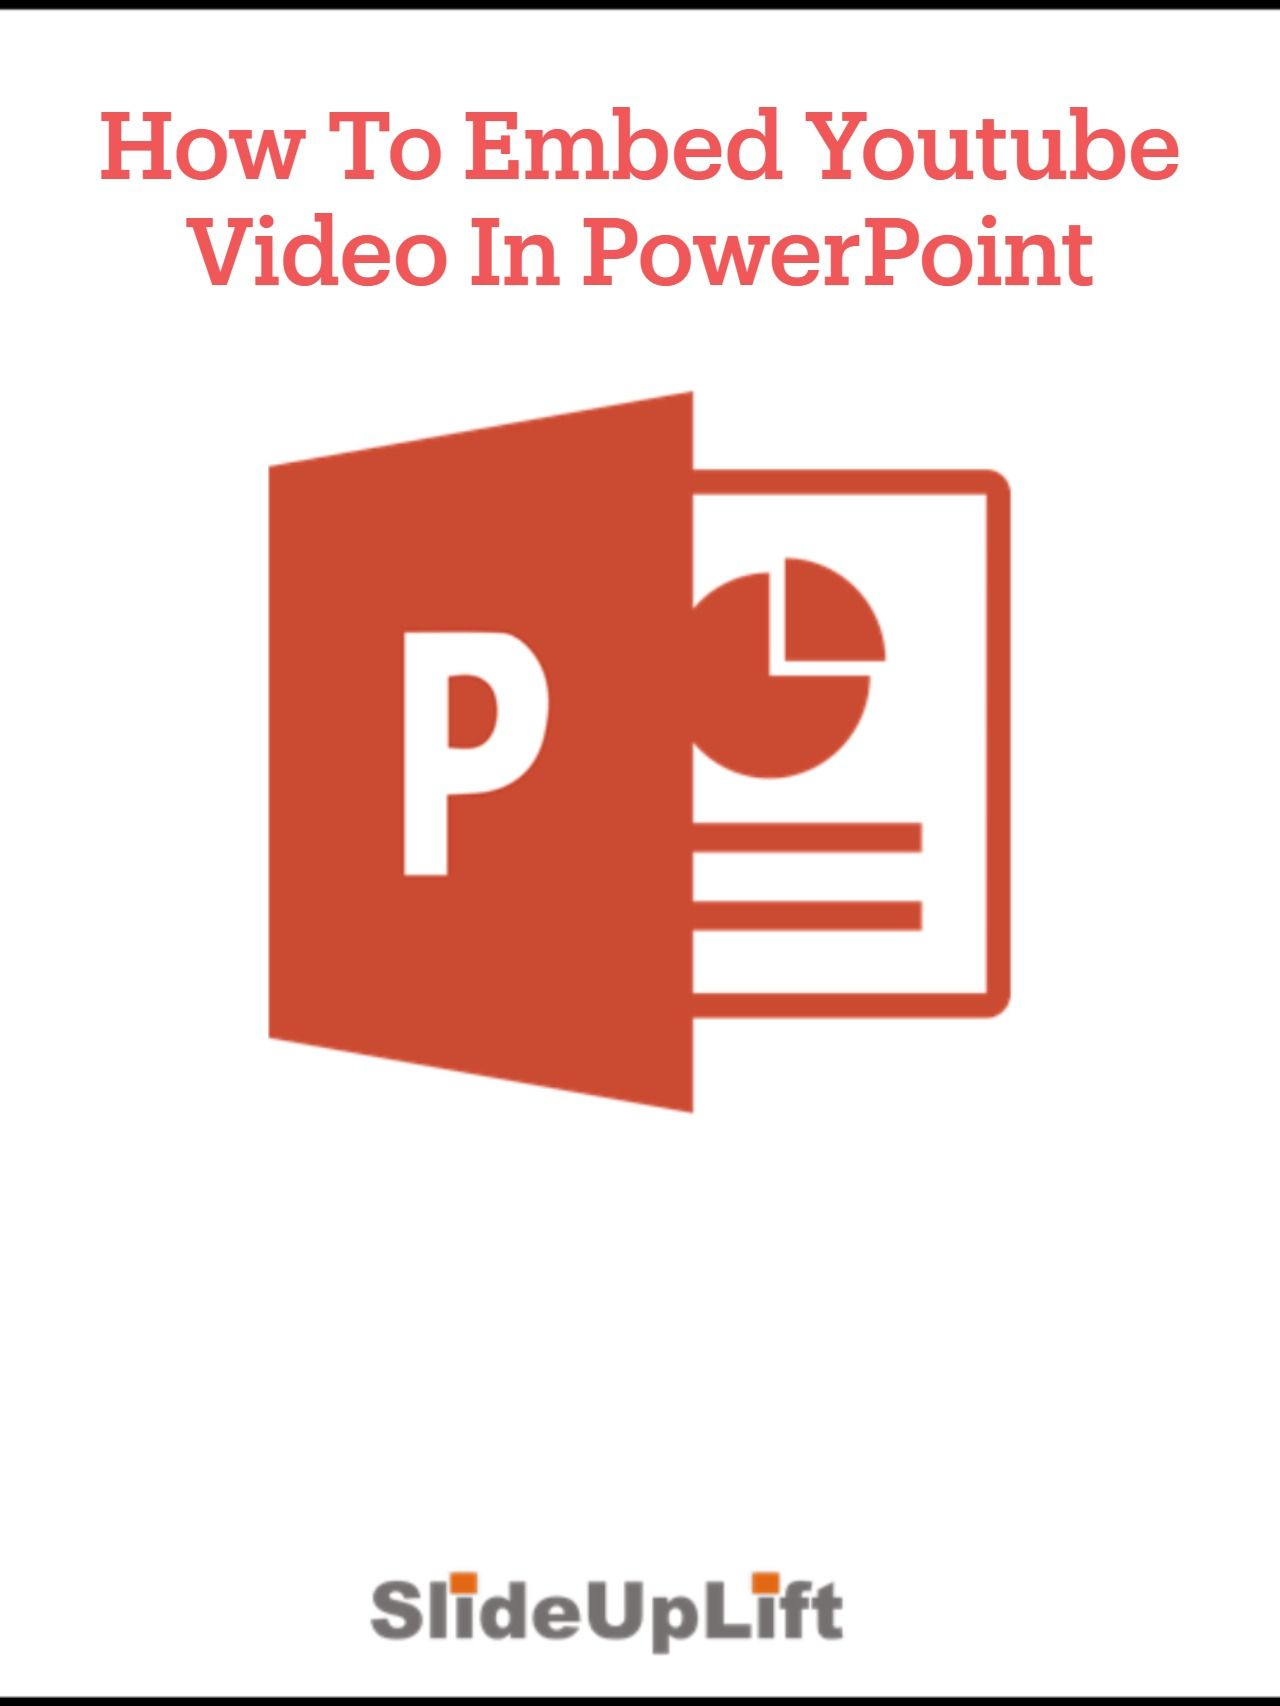 How to add video in ppt powerpoint tutorial in 2020